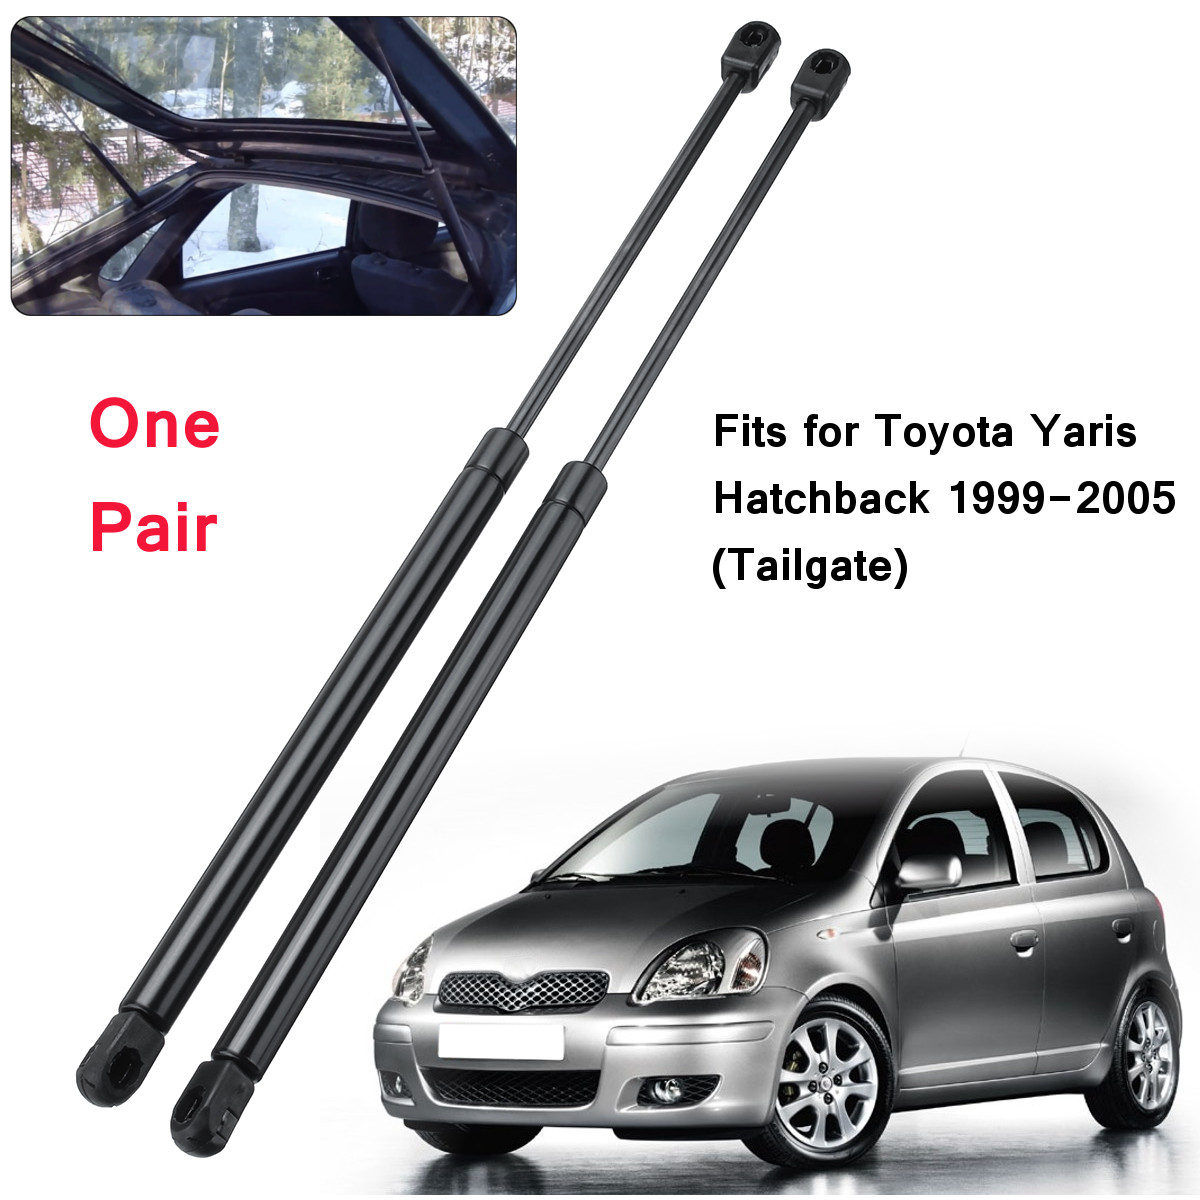 For Ford Focus Estate 2002-2005 Pair of Rear Tailgate Gas Struts